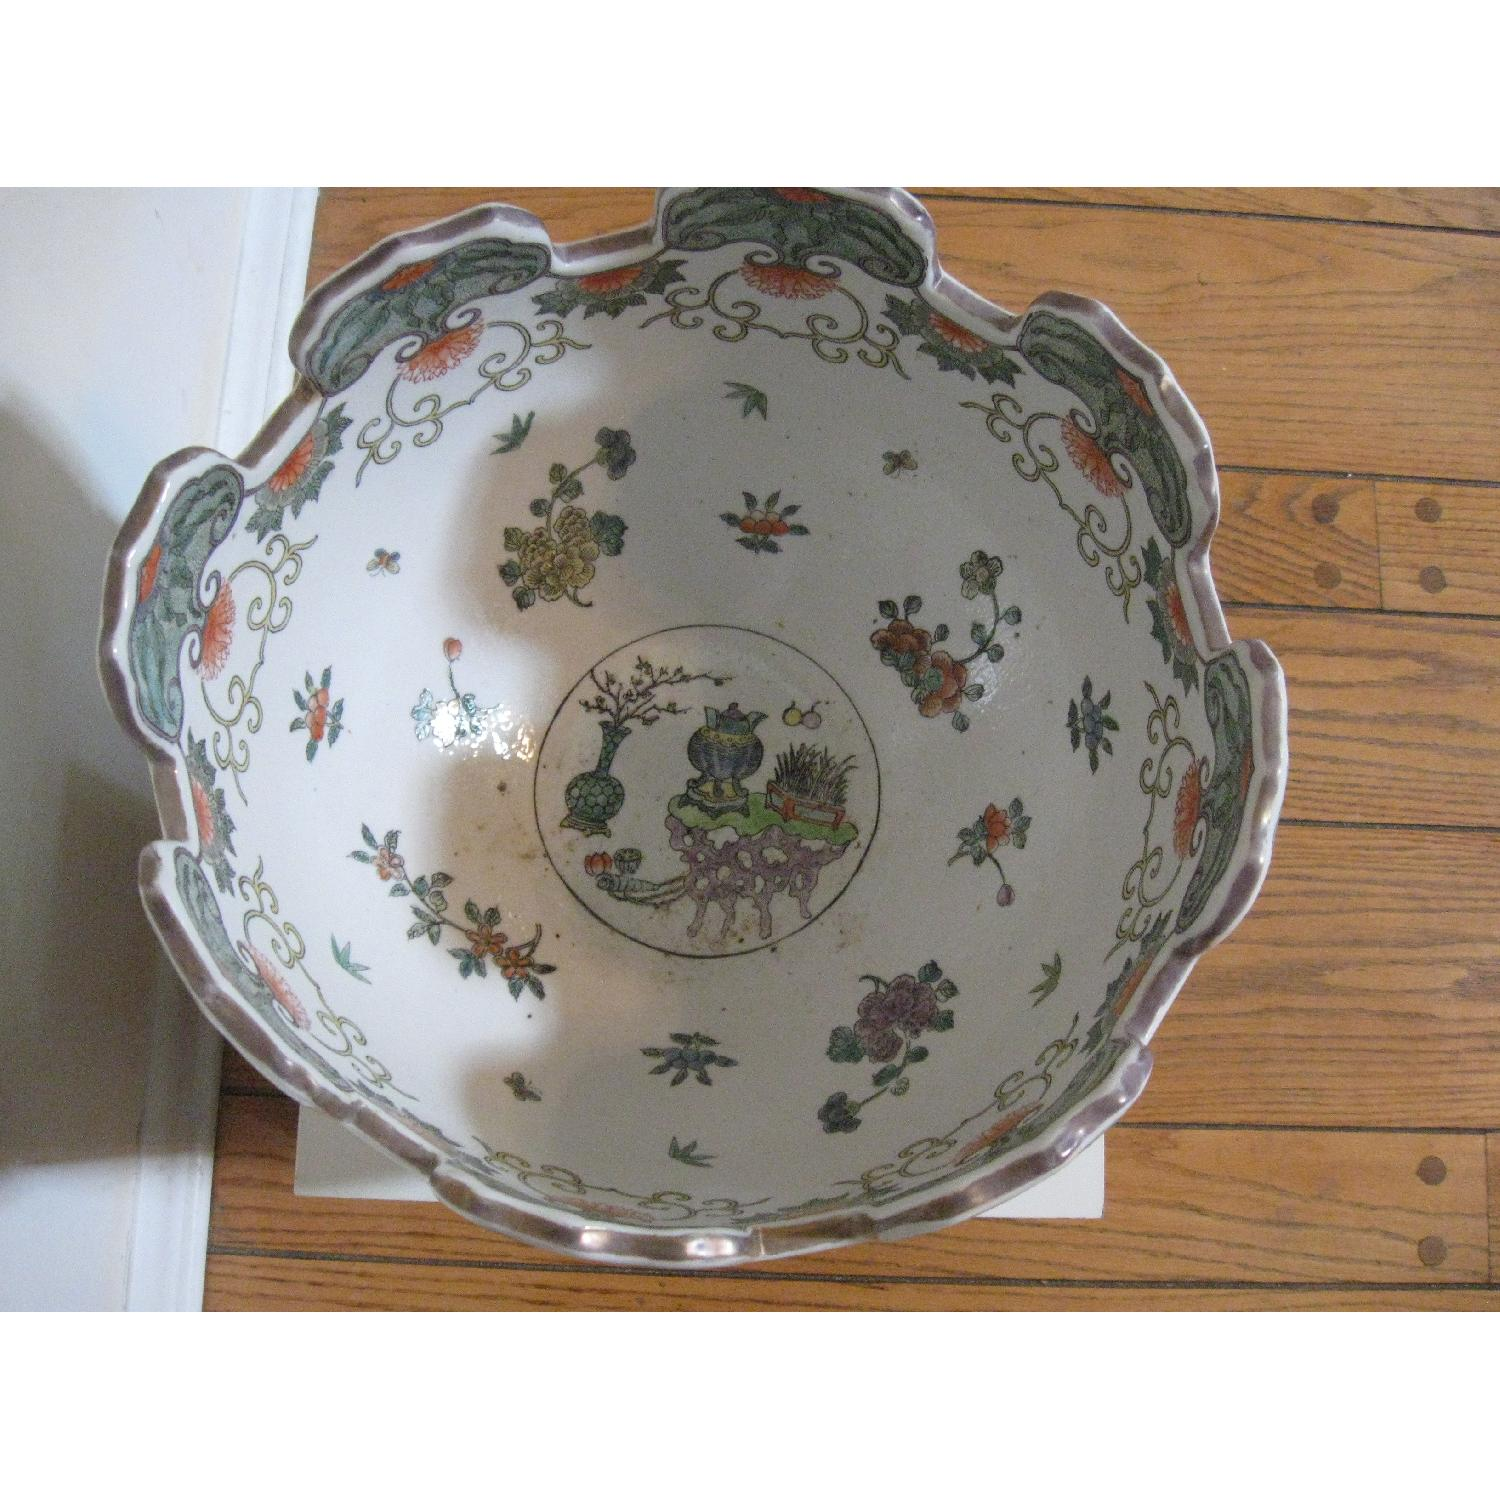 Chinese Porcelain Bowl with Scalloped Top - image-2